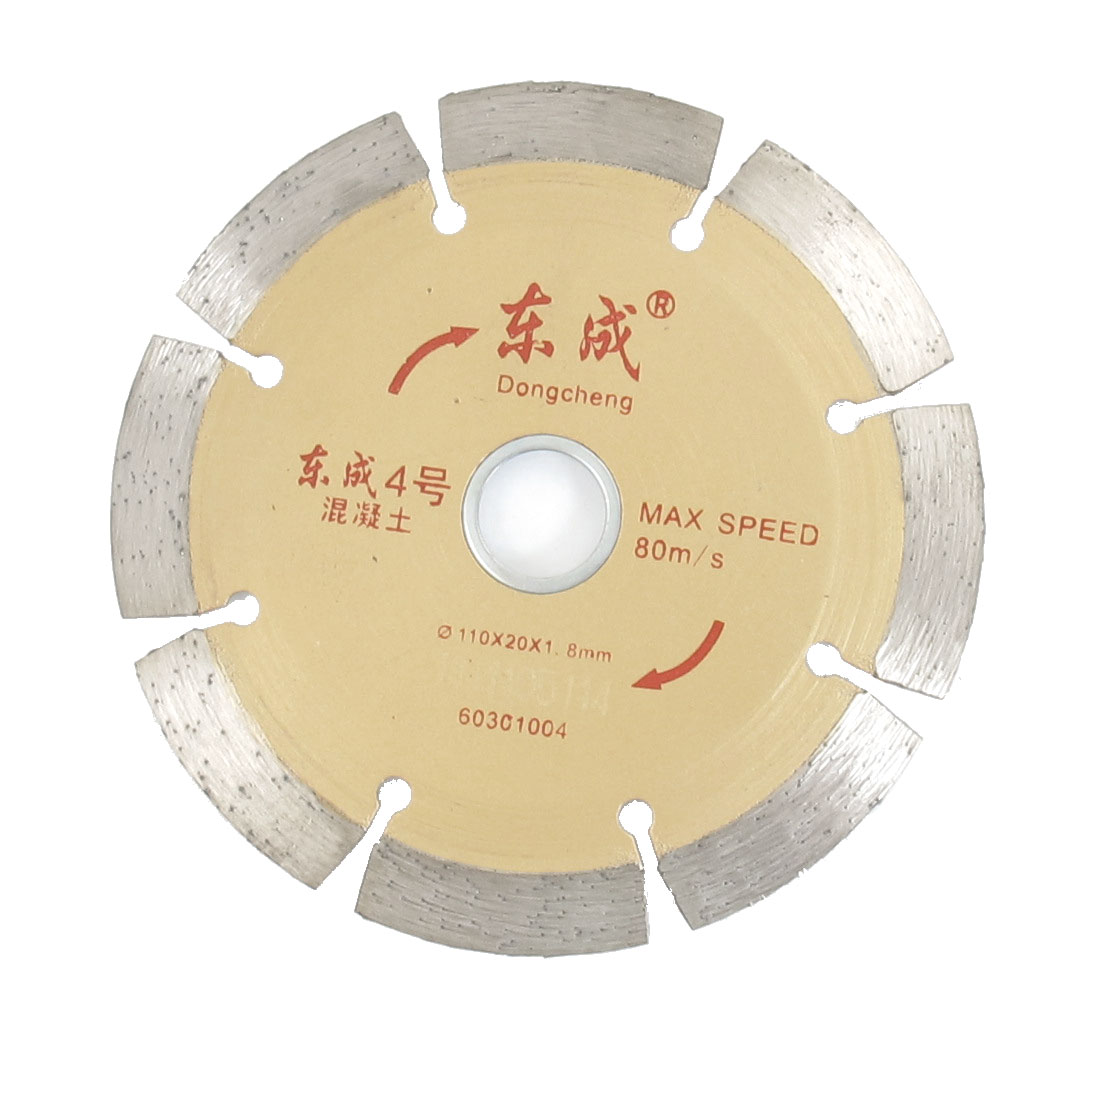 Concrete Cutting Wheel 110mm x 20mm x 1.8mm Diamond Disc Saw Cutter